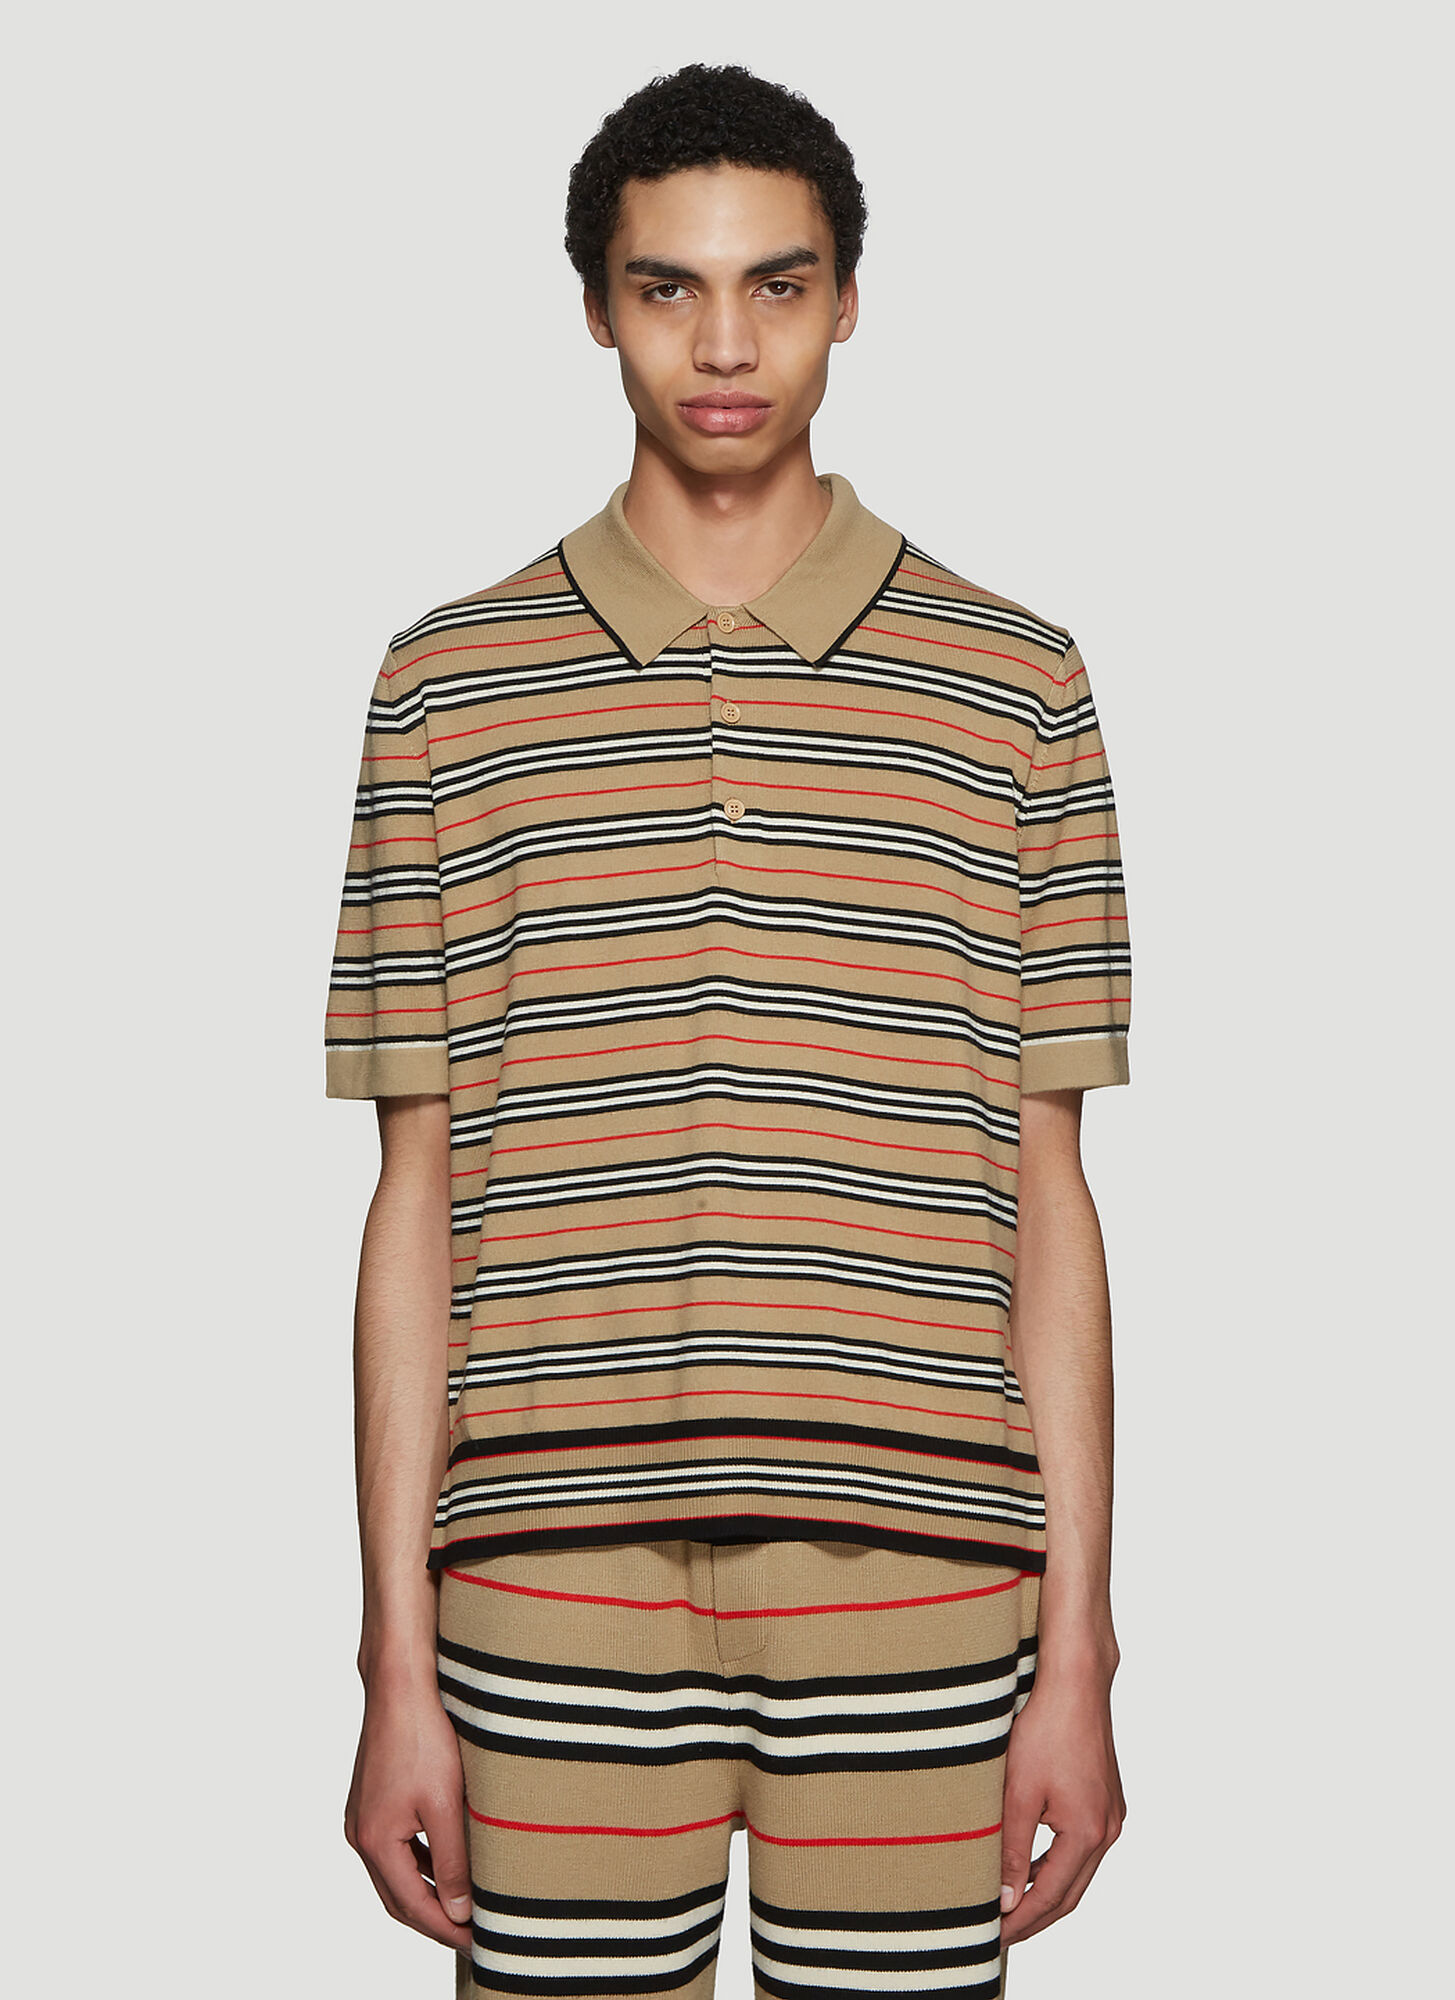 Burberry Striped Polo Shirt in Beige size S